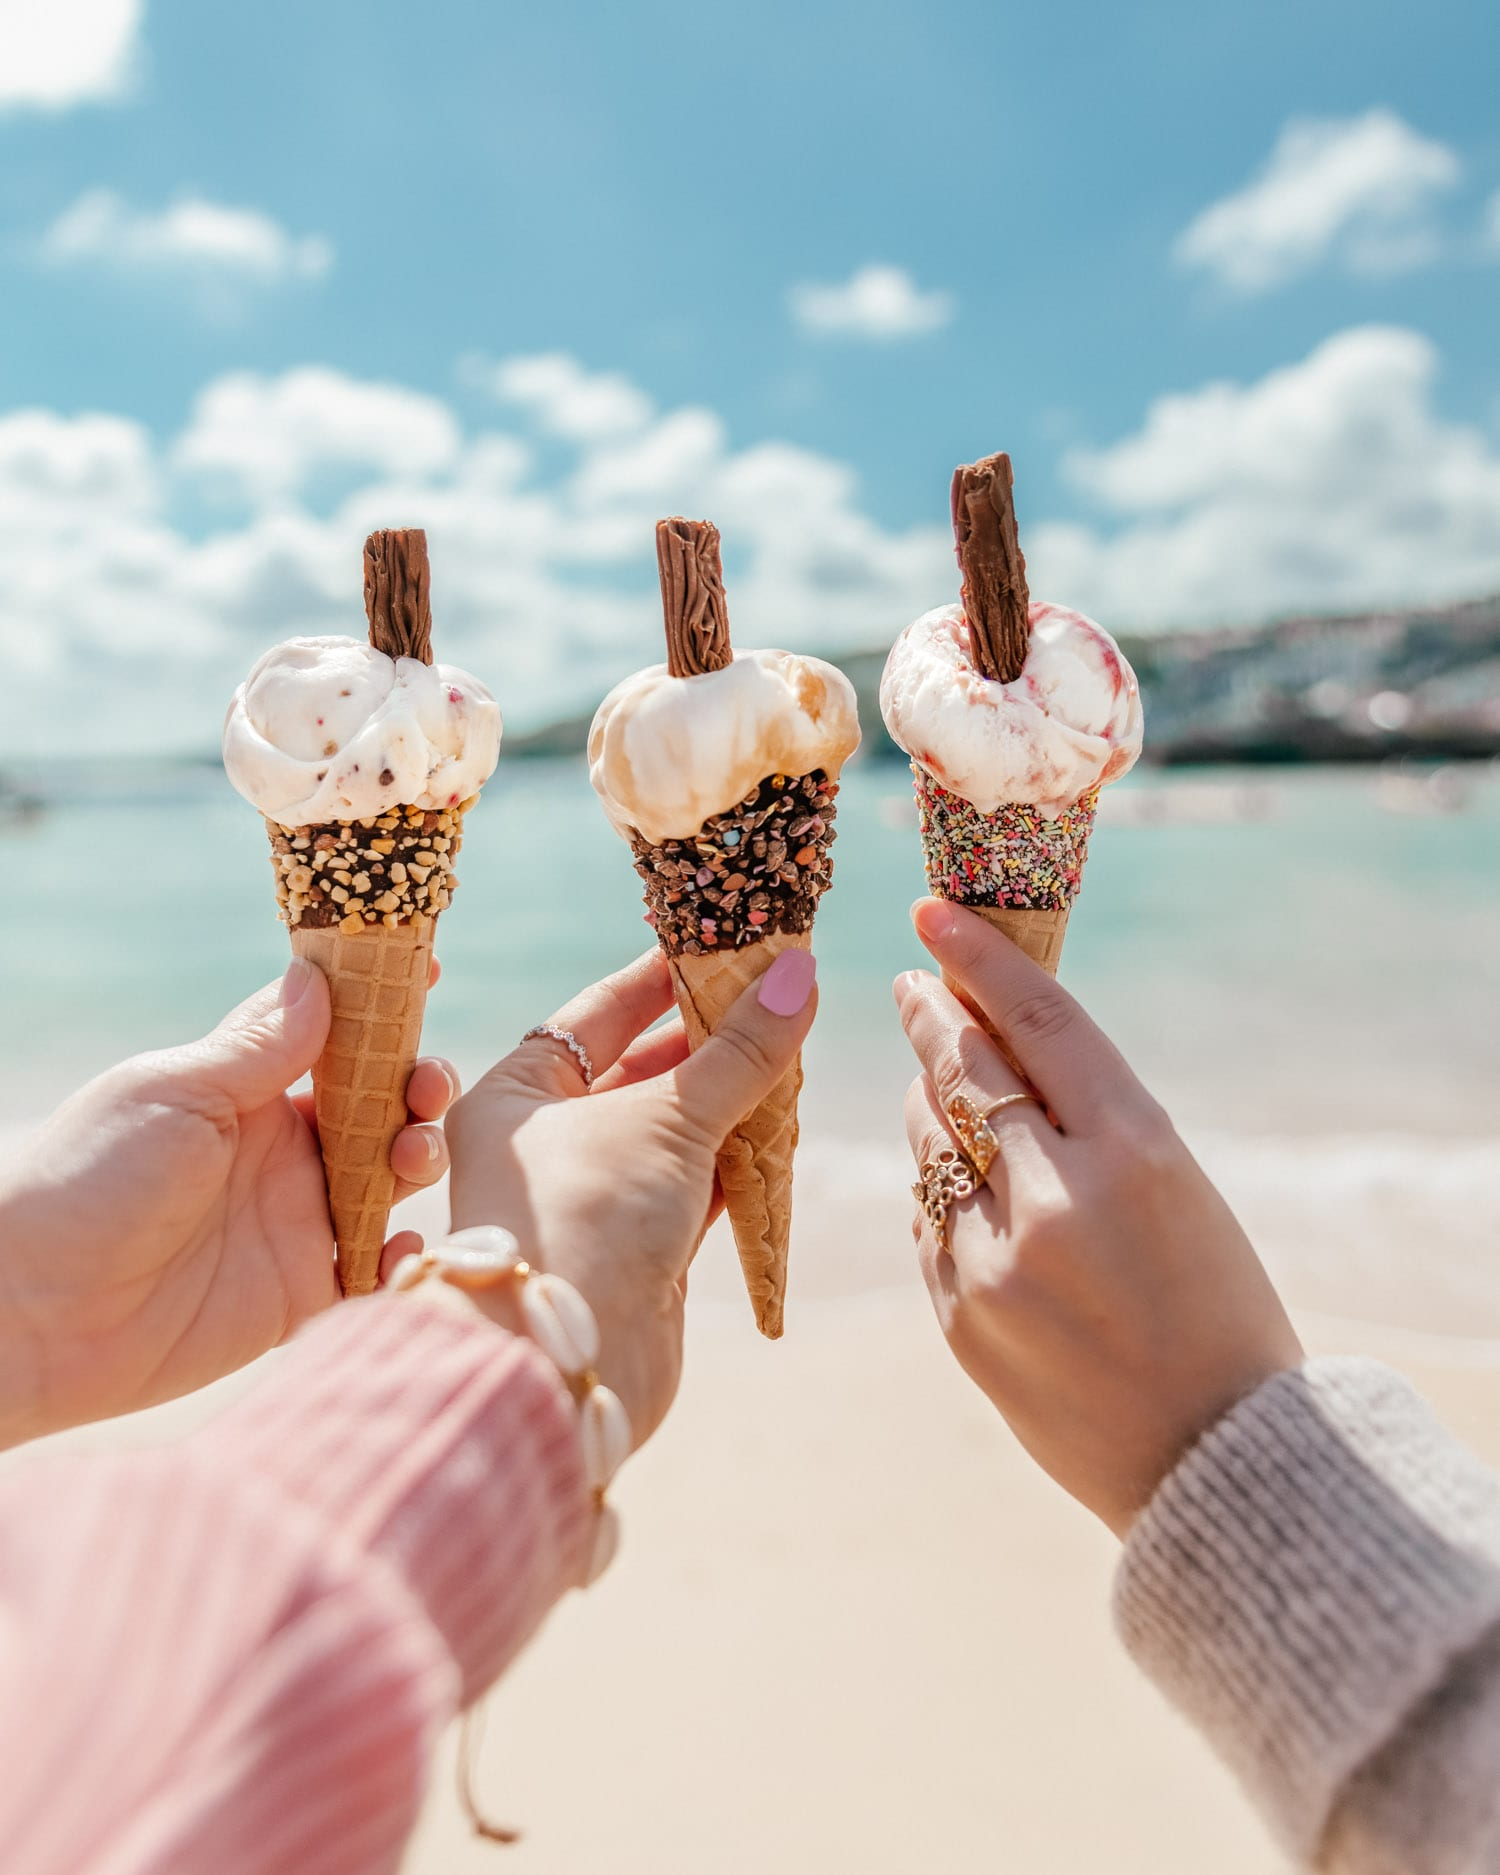 Moomaid of Zennor - Instagrammable Cornish Ice Cream, Cornwall, St Ives